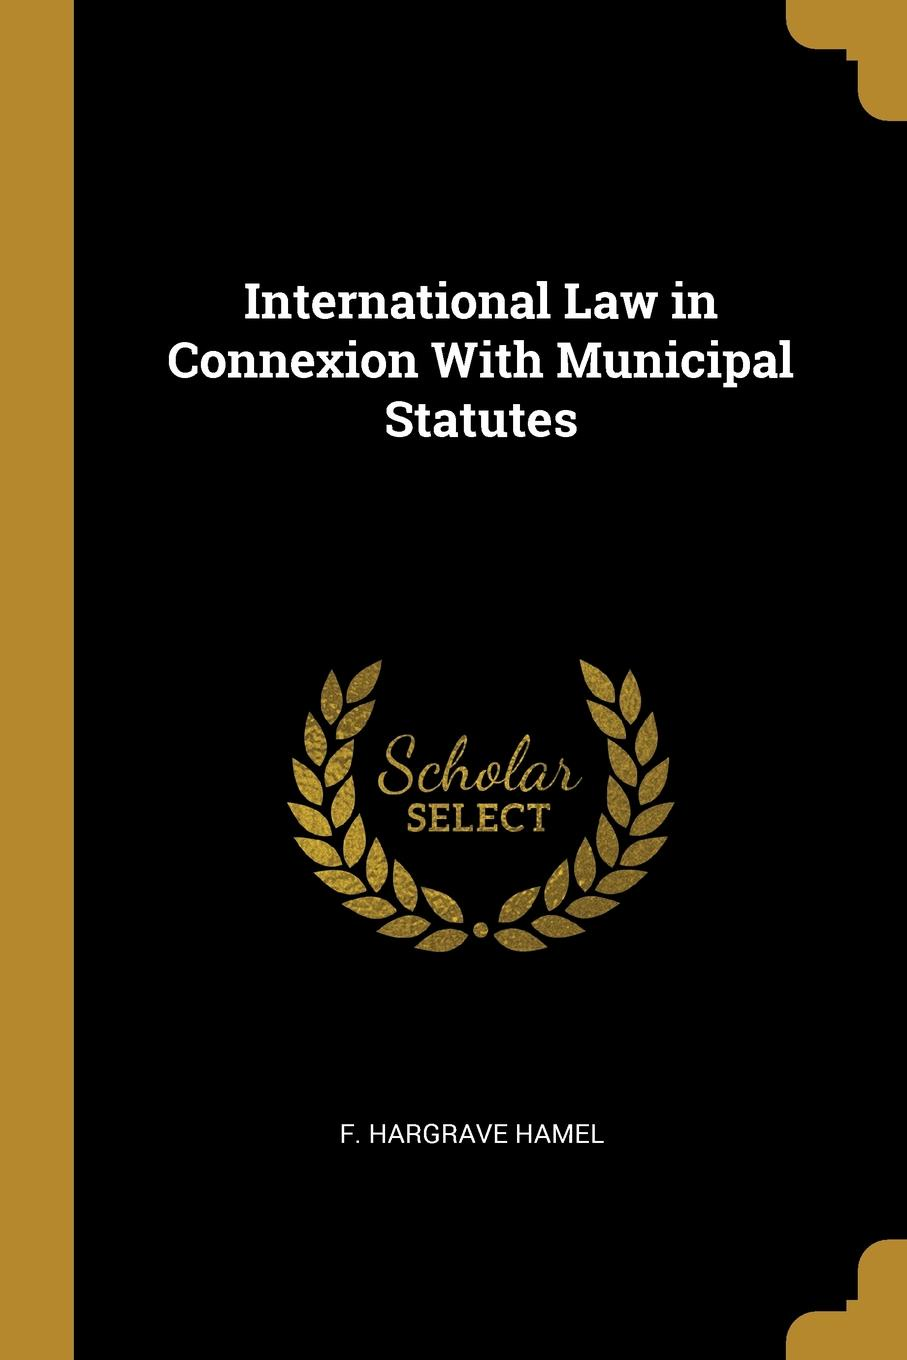 F. Hargrave Hamel. International Law in Connexion With Municipal Statutes